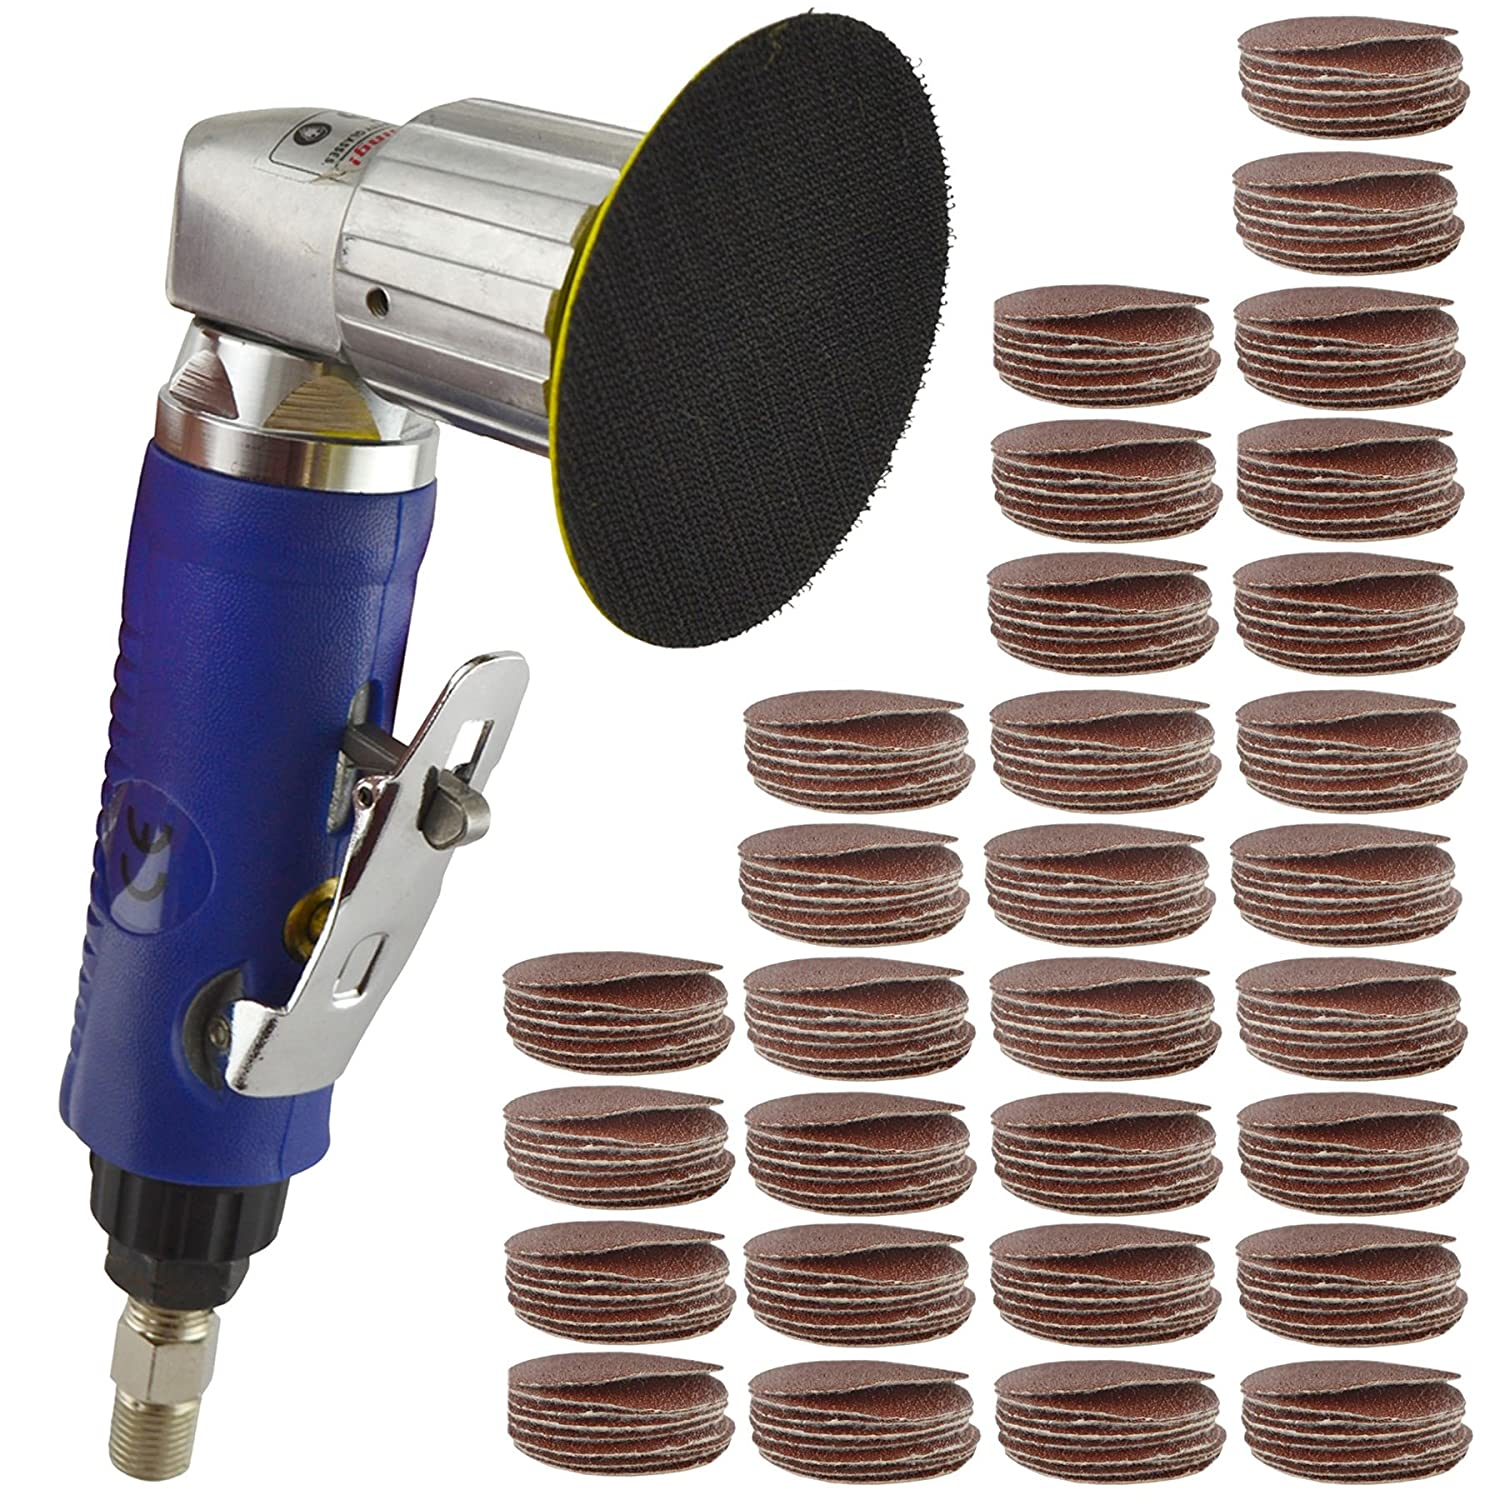 2' Air Angle Sander Grinder Polisher And 300 Pack 40 120 240 Grit Hook/Loop Pads AB Tools